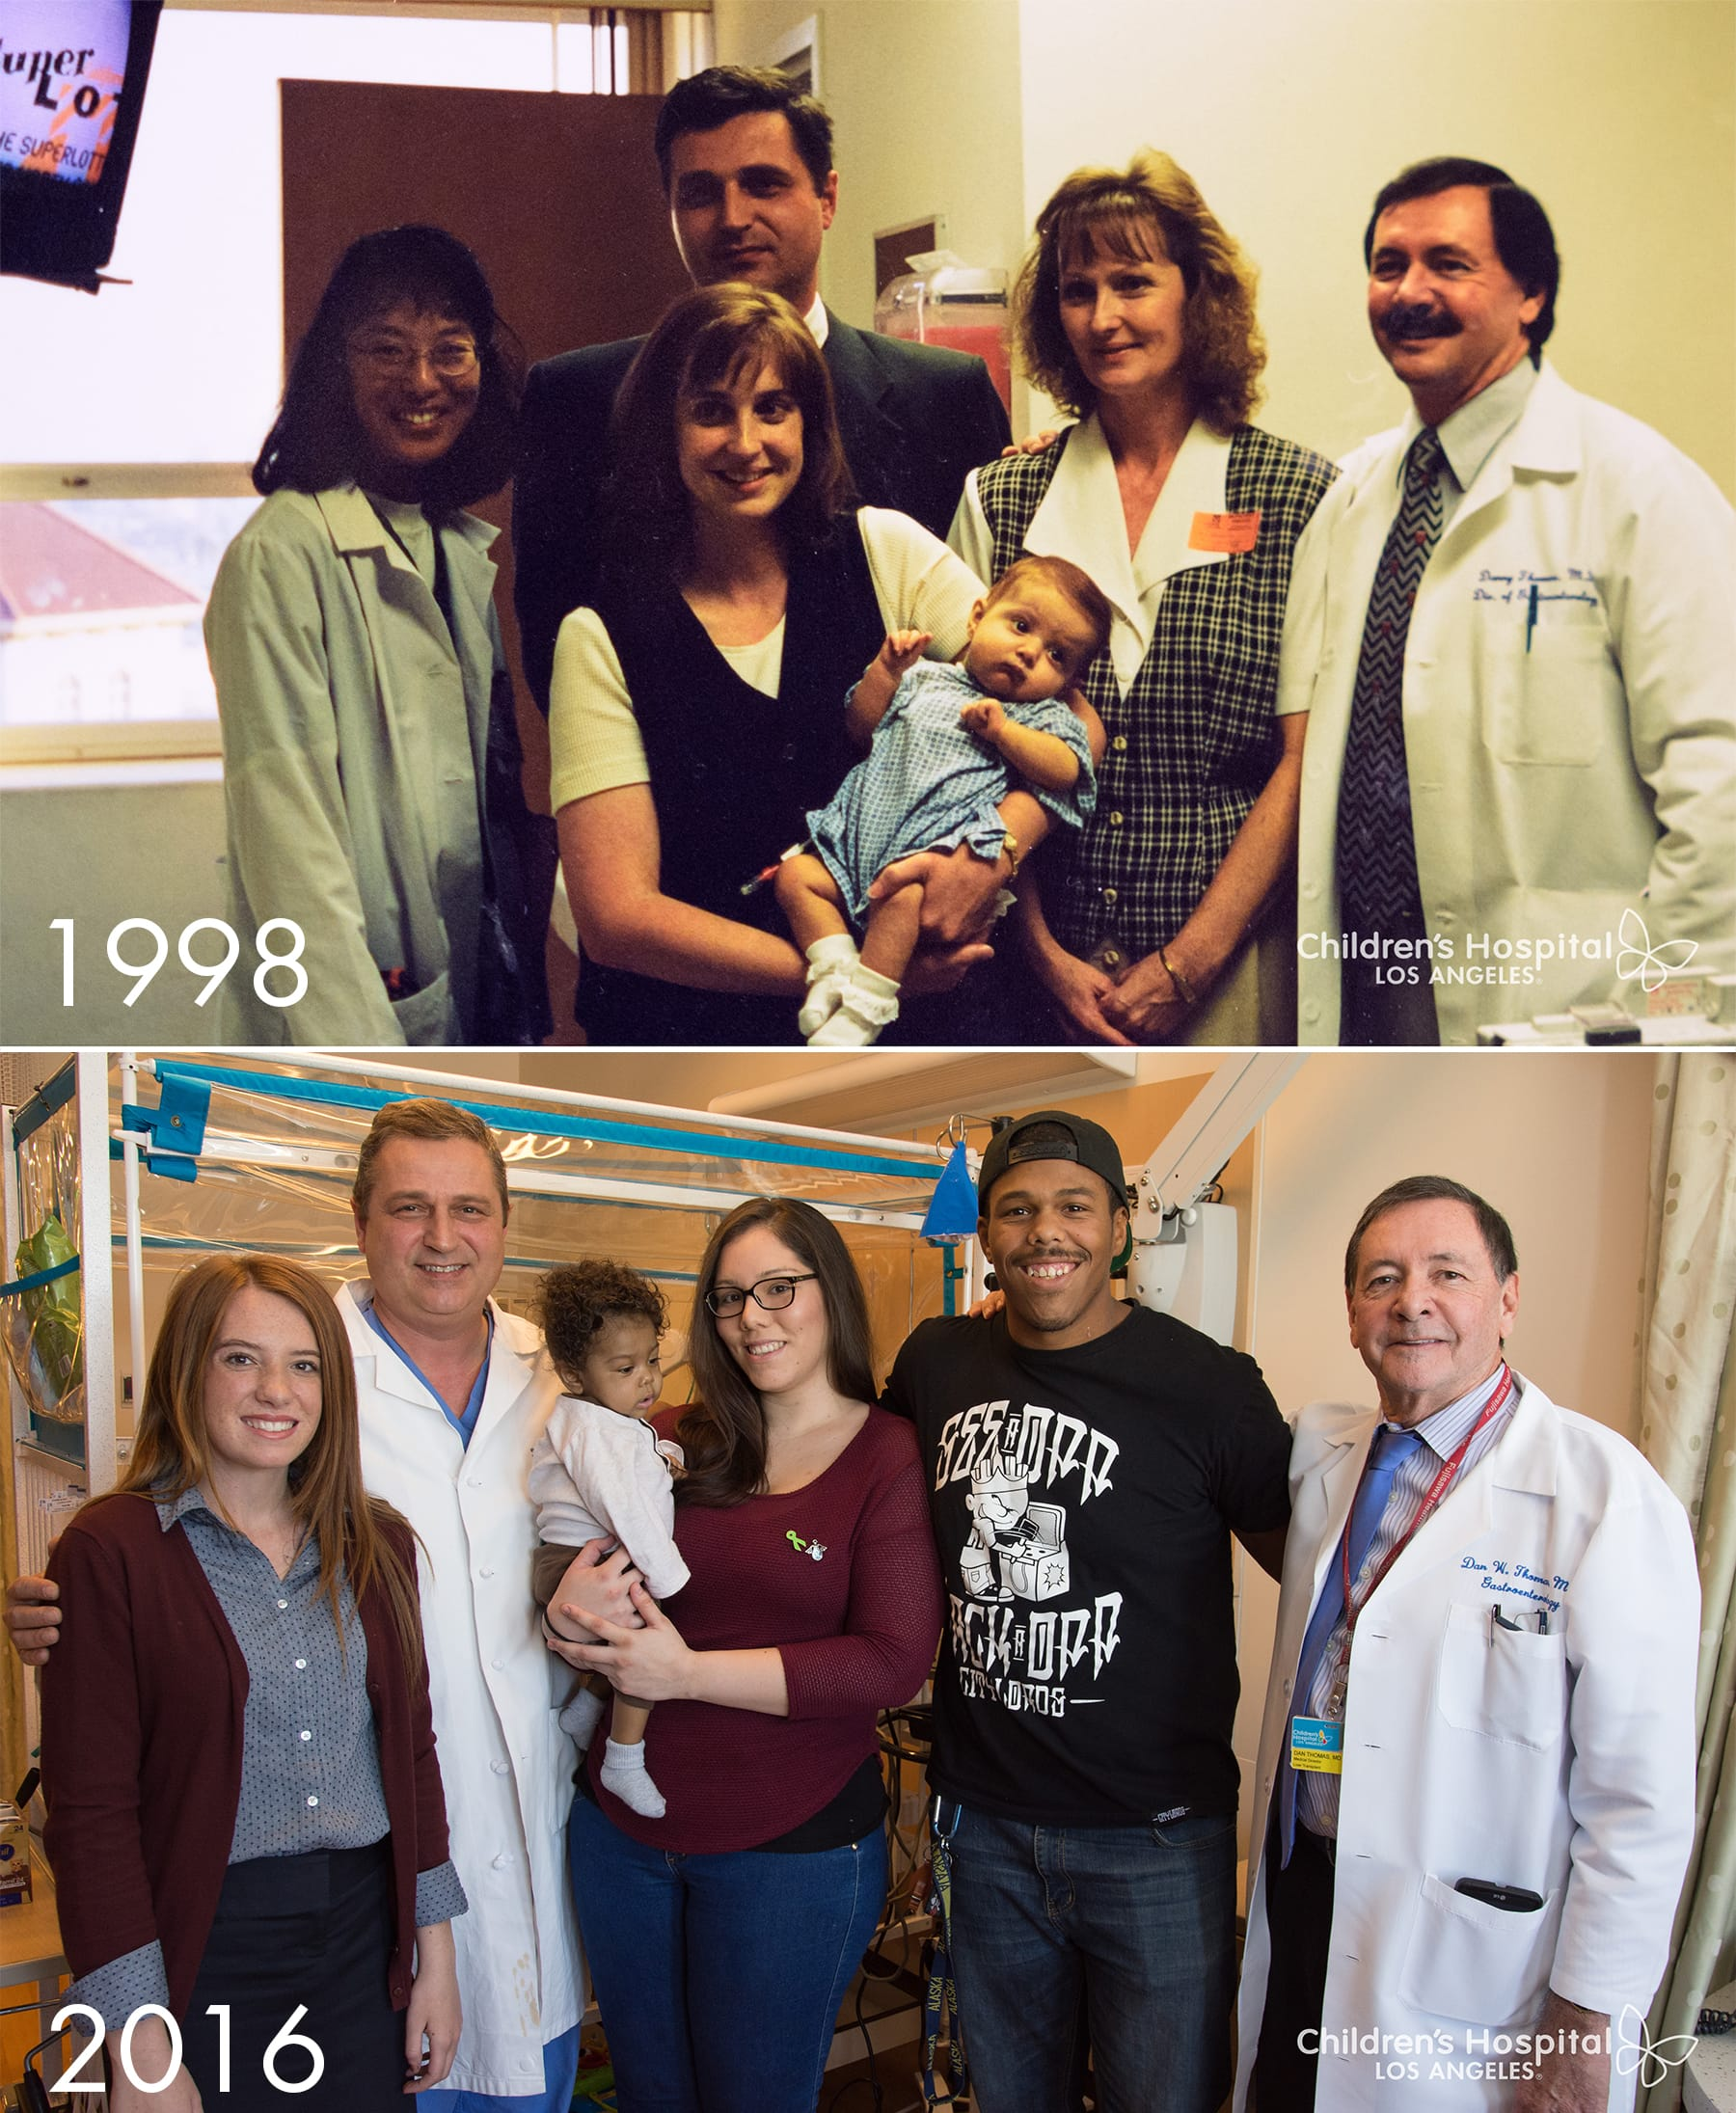 Top: Lydia Hand as an infant post-transplant in 1998, with her mother, grandmother and liver transplant team. Bottom: Baby Donovan Daniels and his parents post-transplant in 2016, joined by doctors and Lydia, now 18.